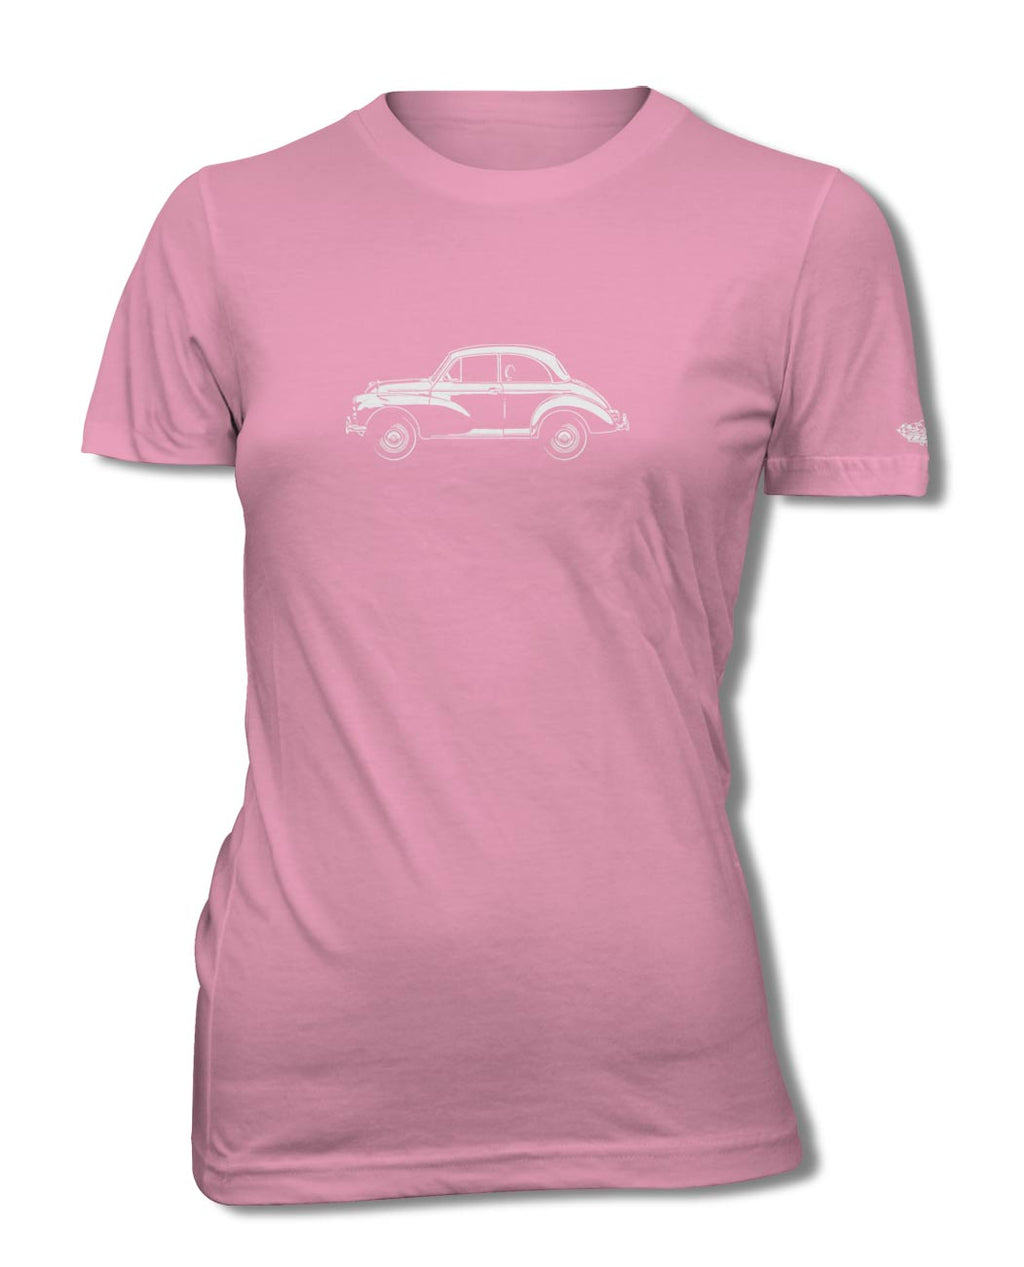 Morris Minor 2-Door Saloon T-Shirt - Women - Side View